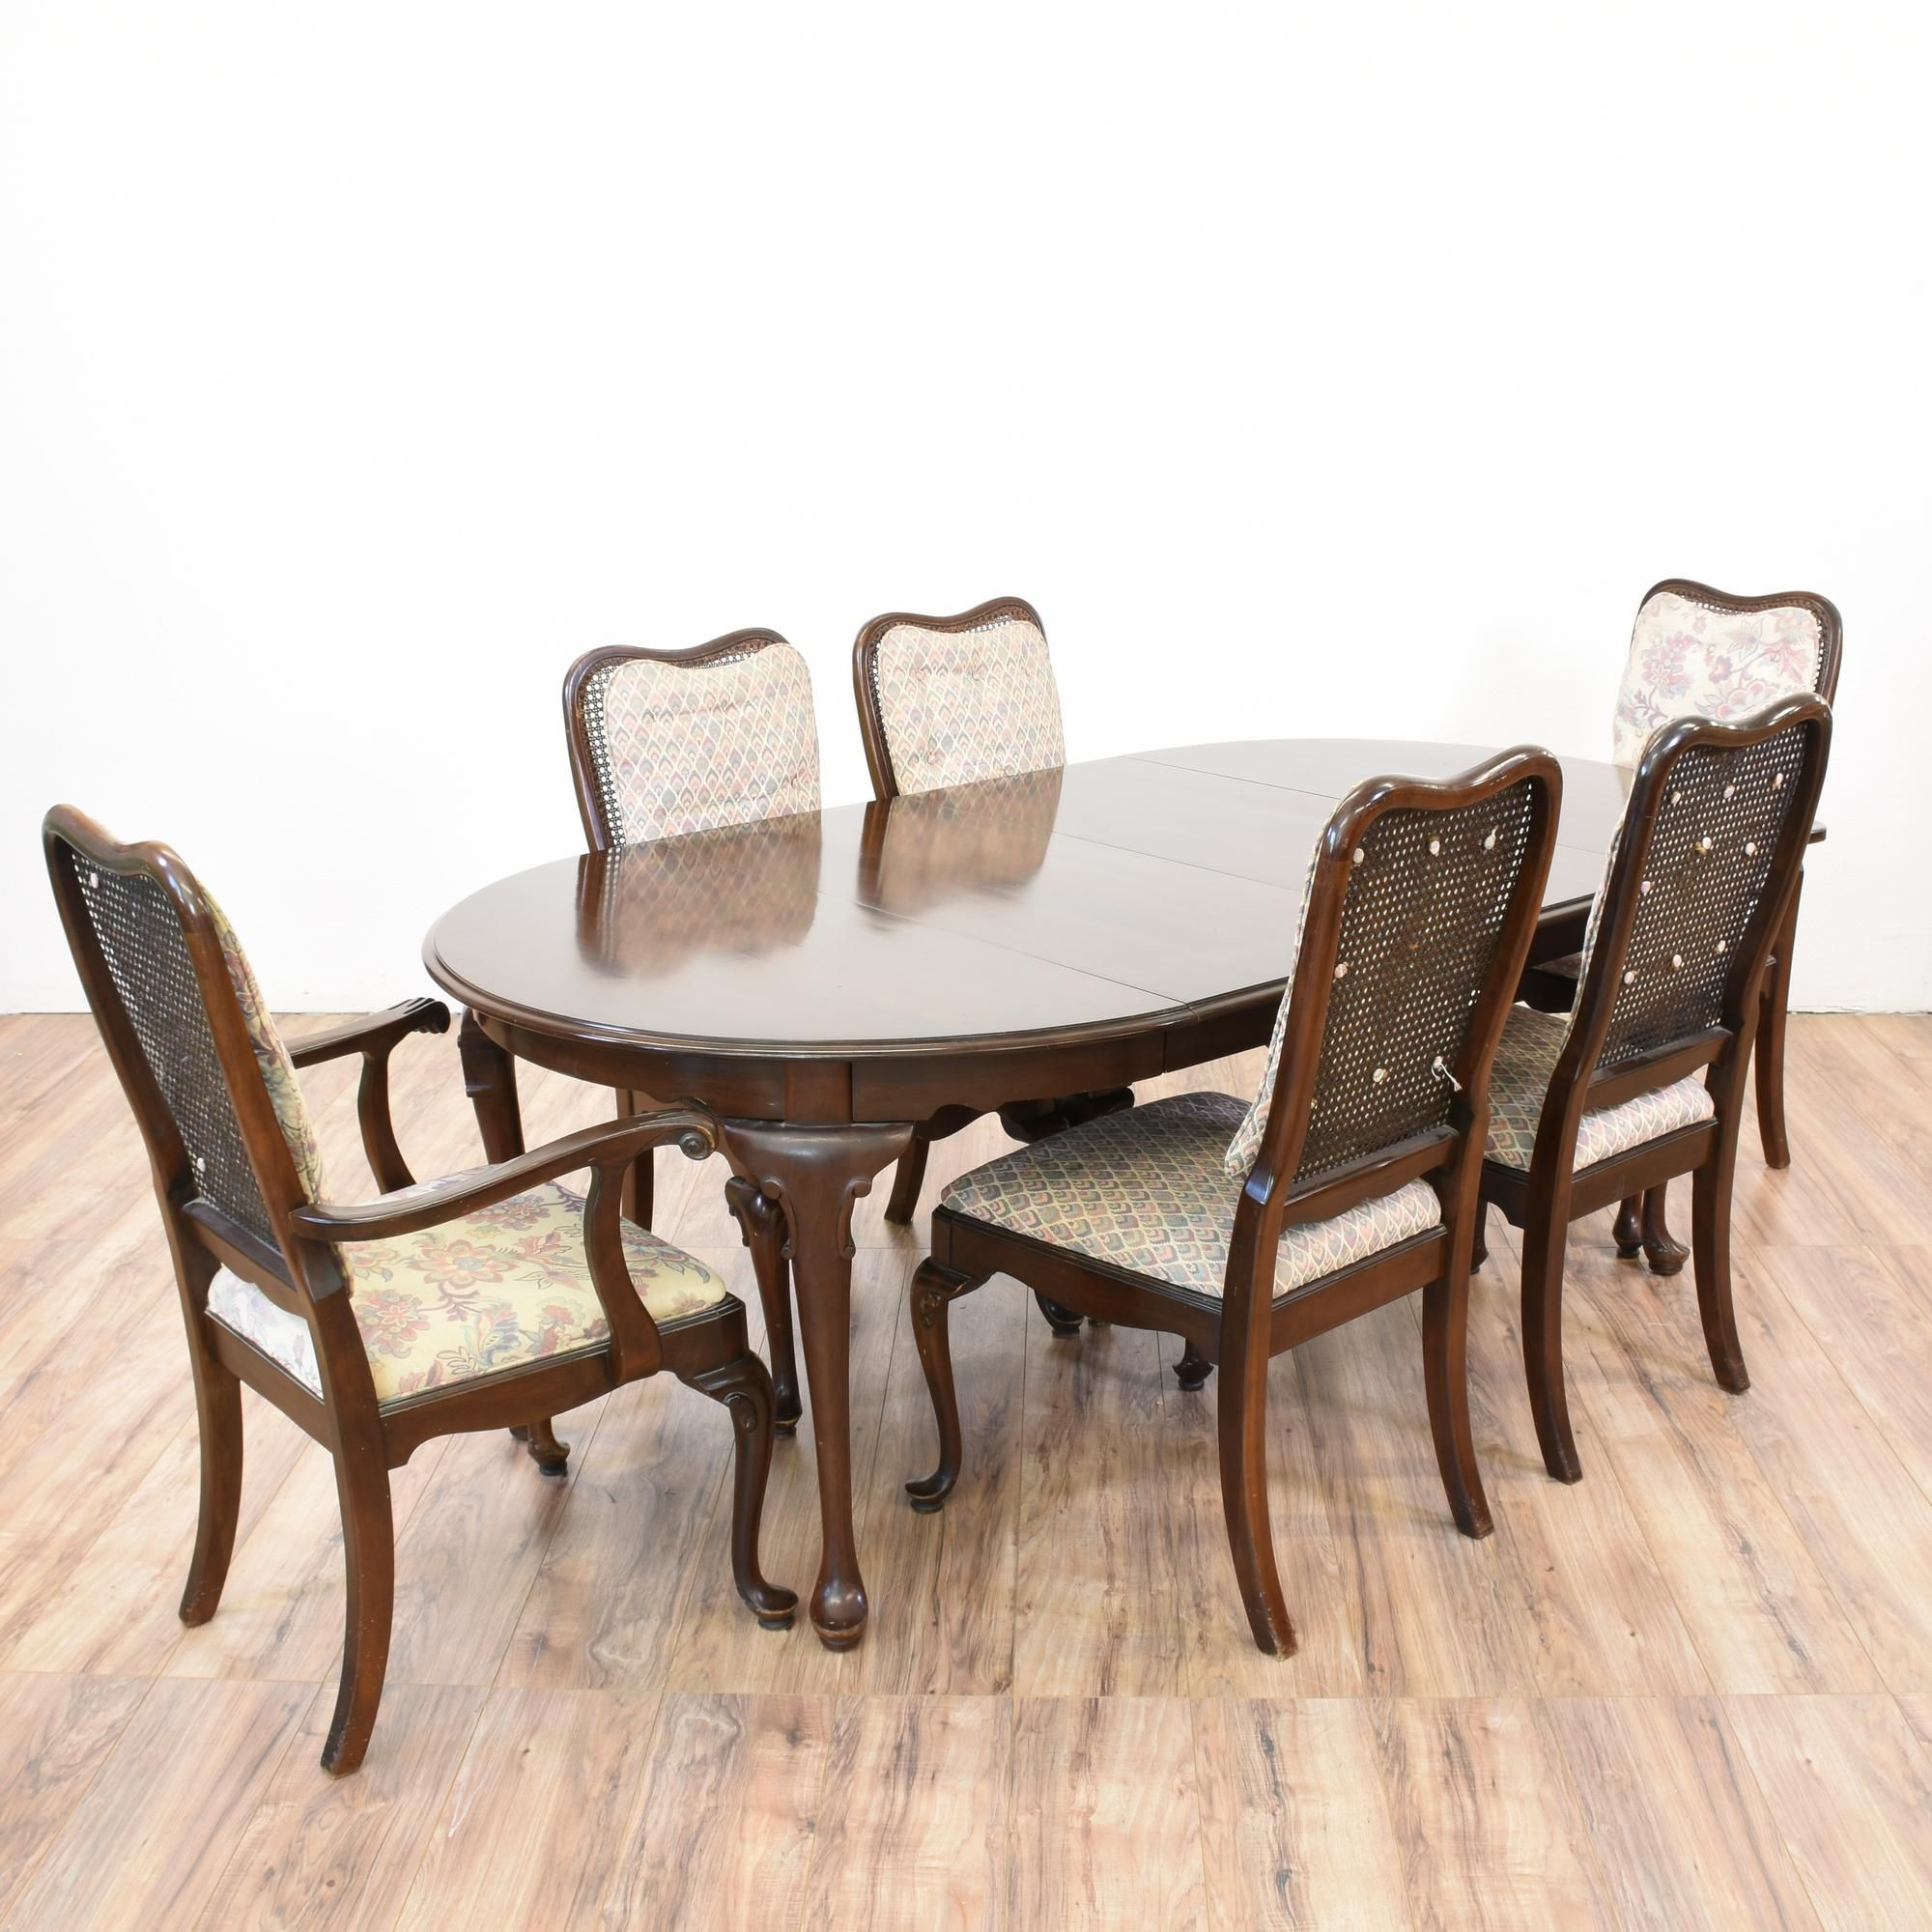 This Ethan Allen Dining Set Is Featured In Solid Wood And A Dark